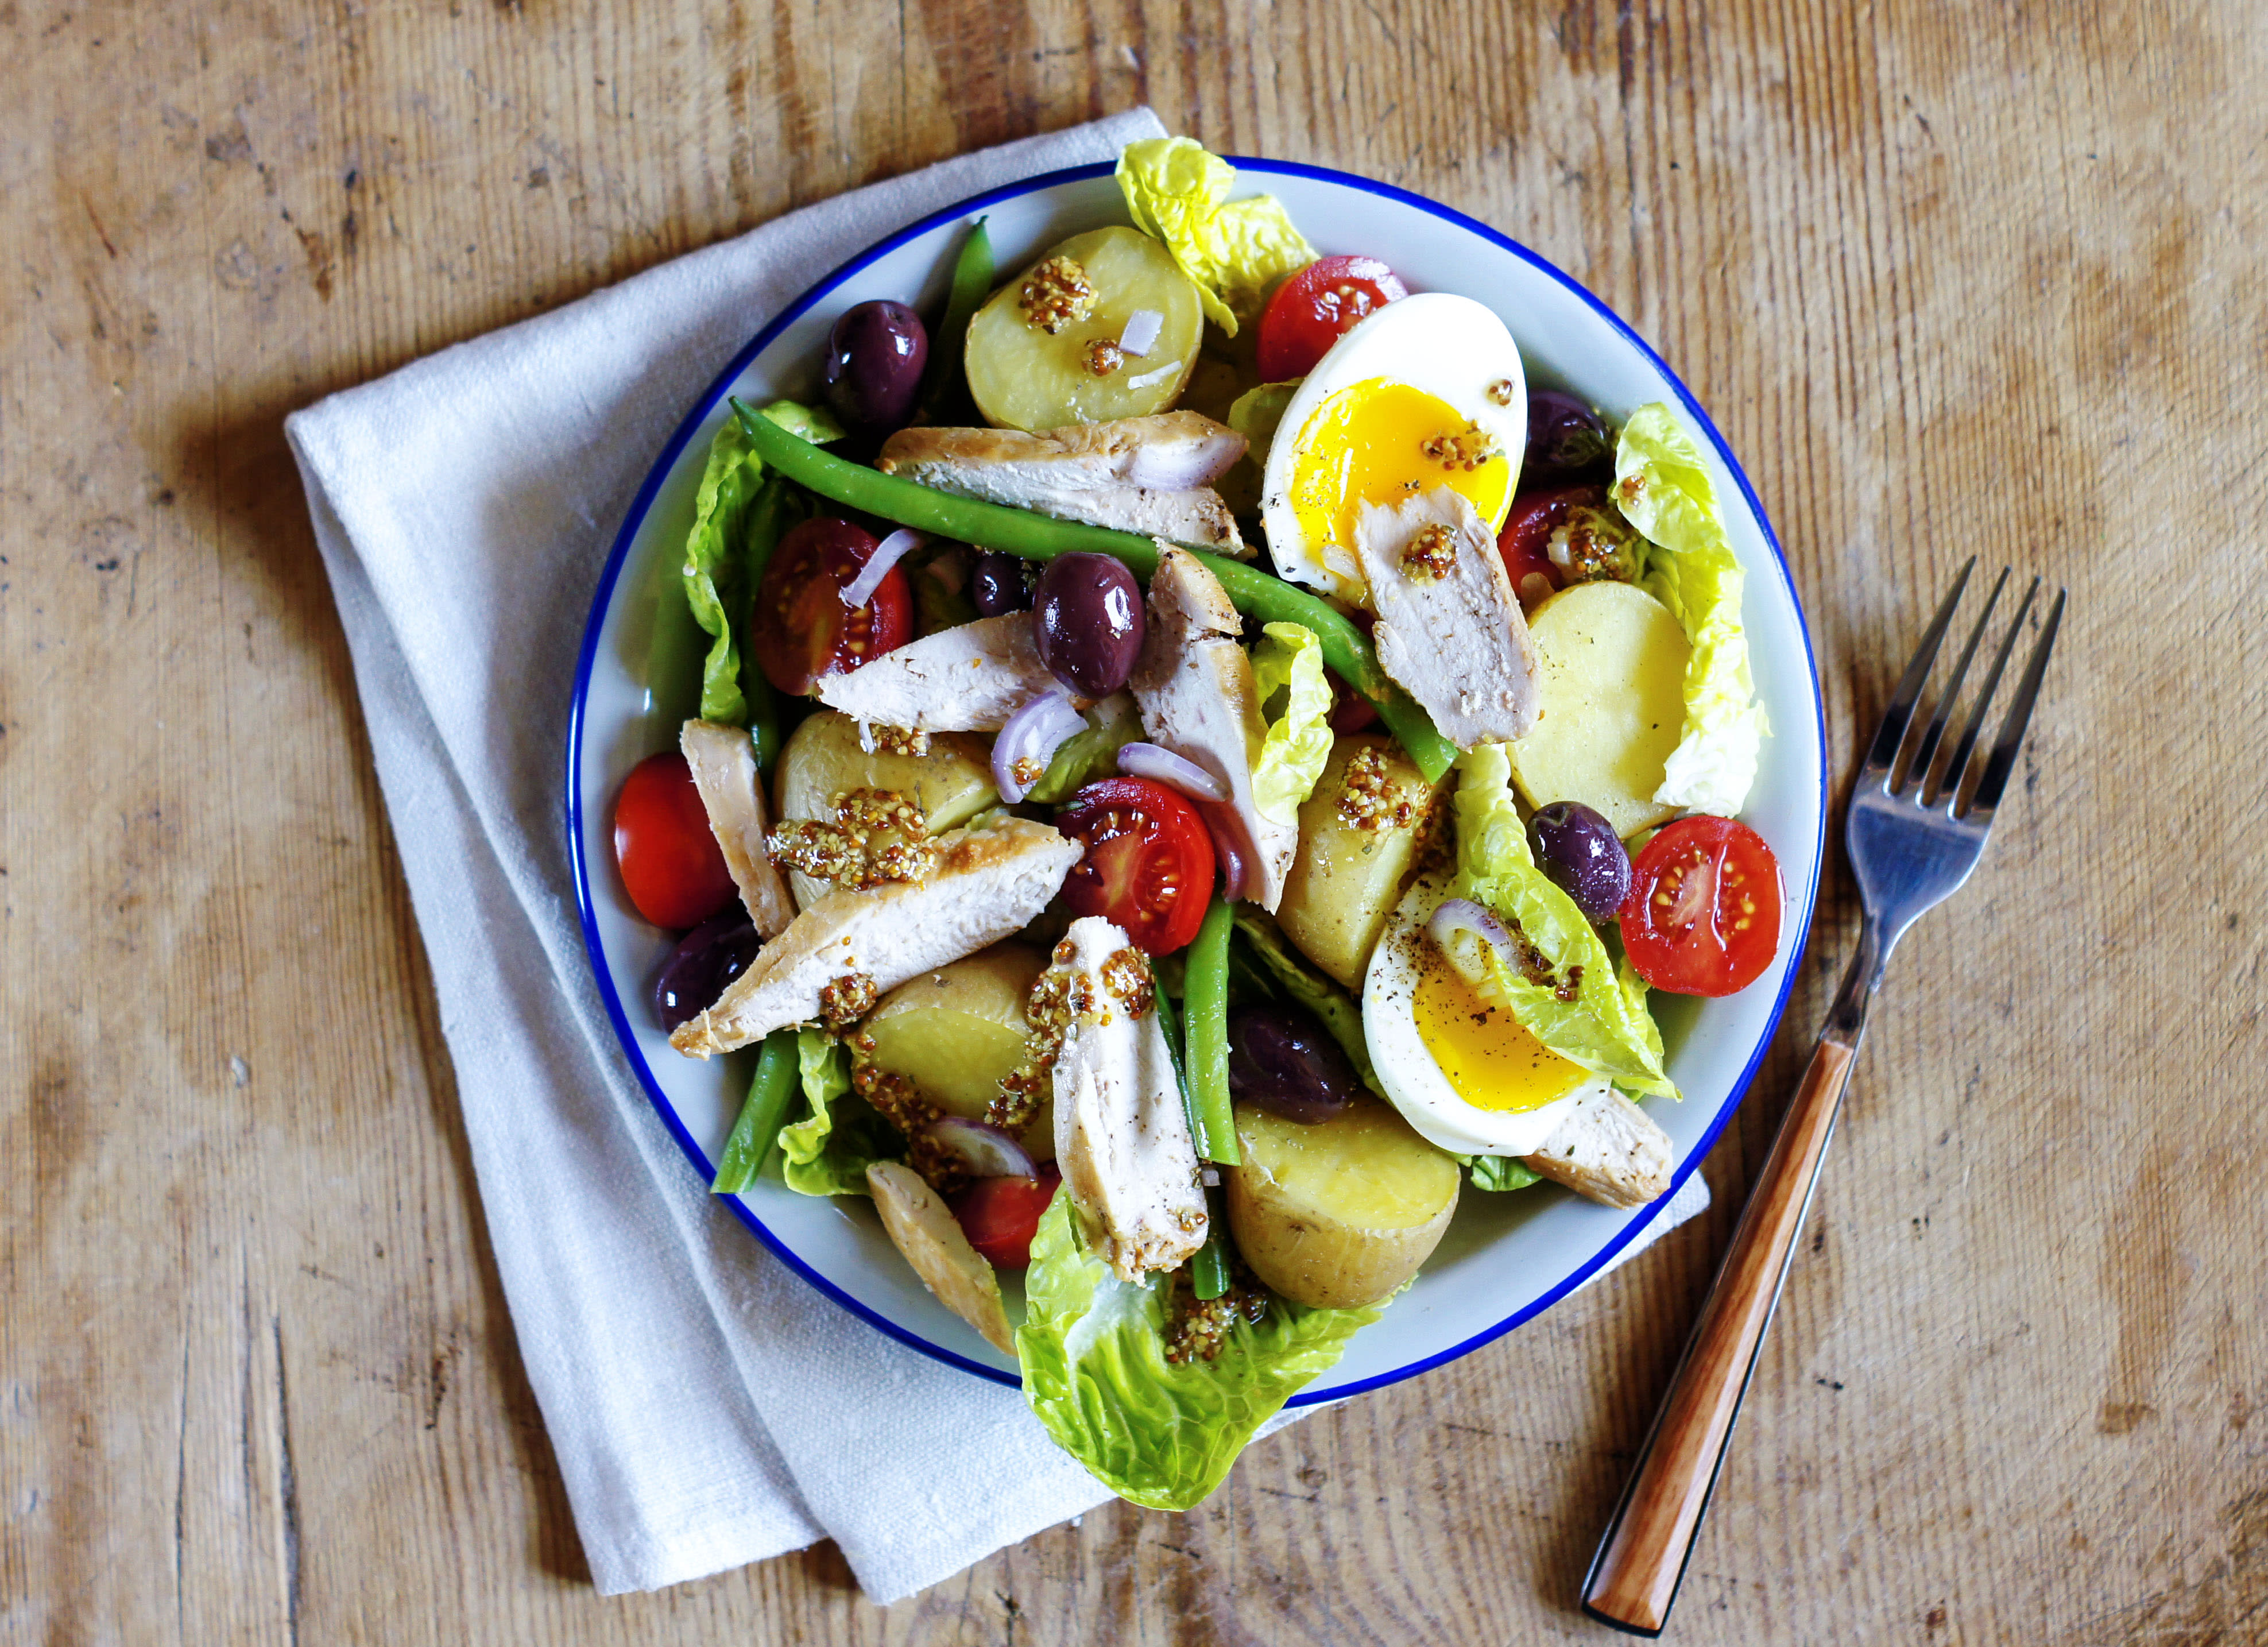 Chicken Nicoise Salad with New Potatoes and Mustard Dressing